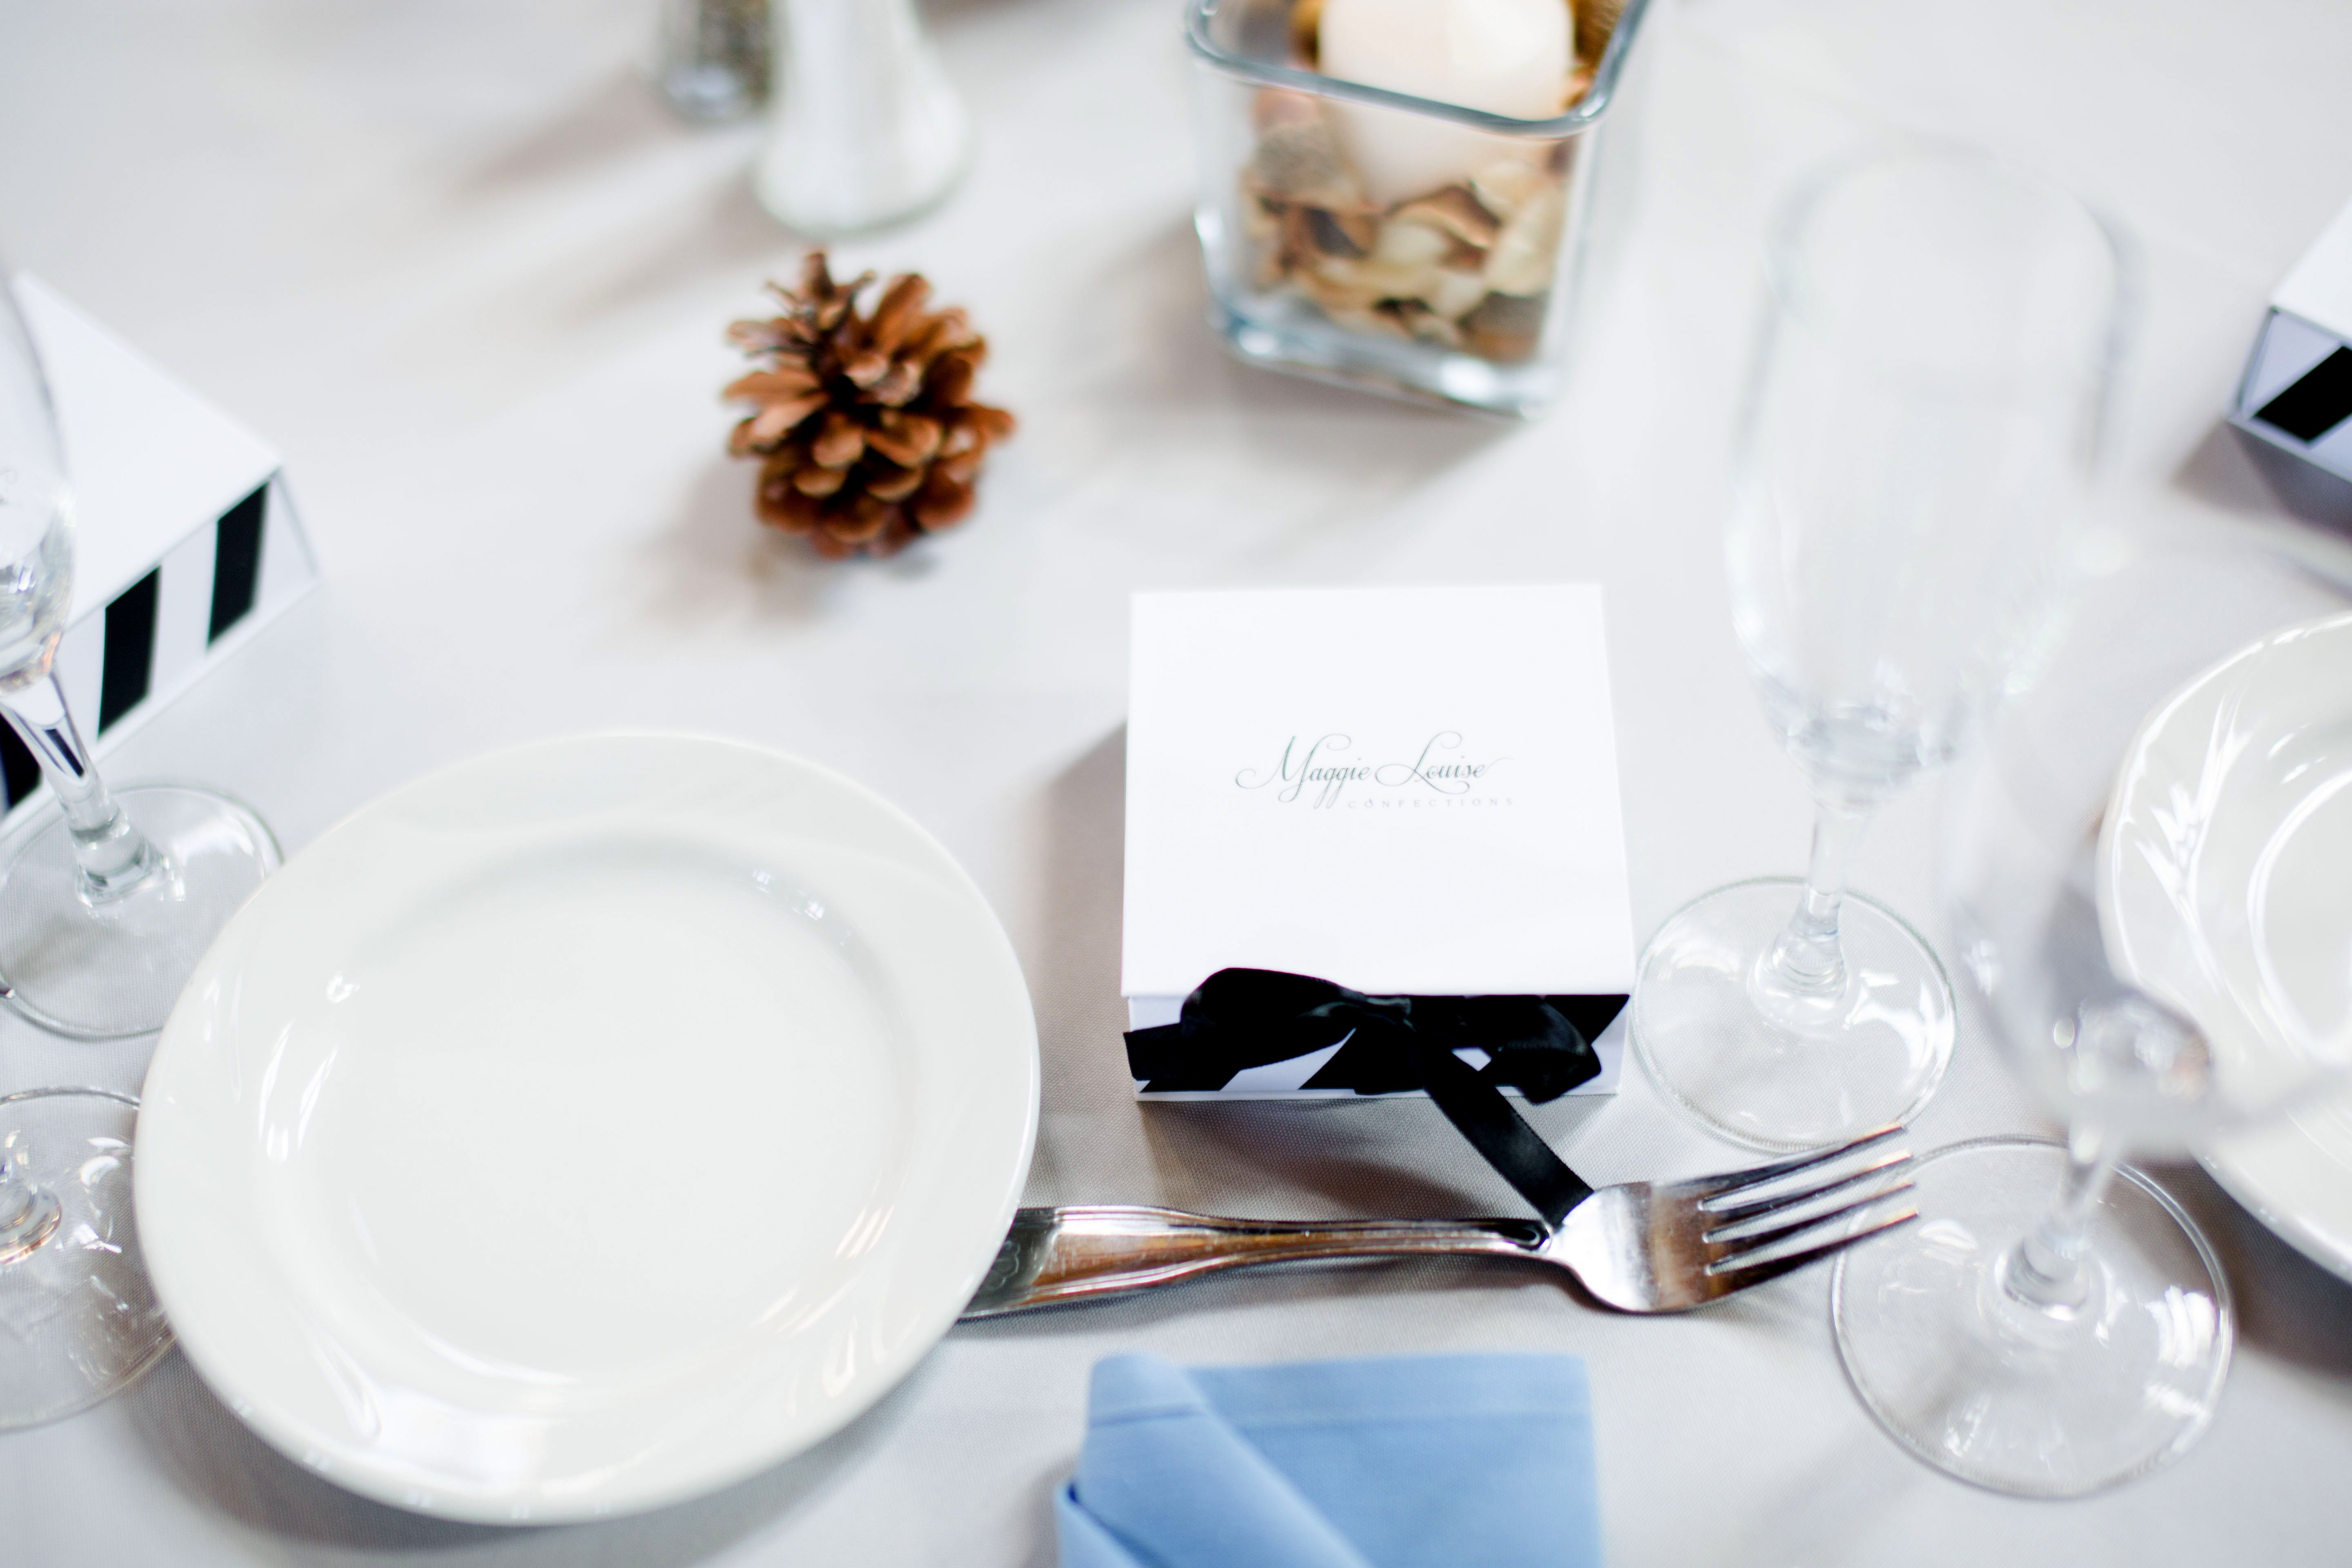 Winter Wedding - Maggie Louise Confections Wedding Favors | I Do ...